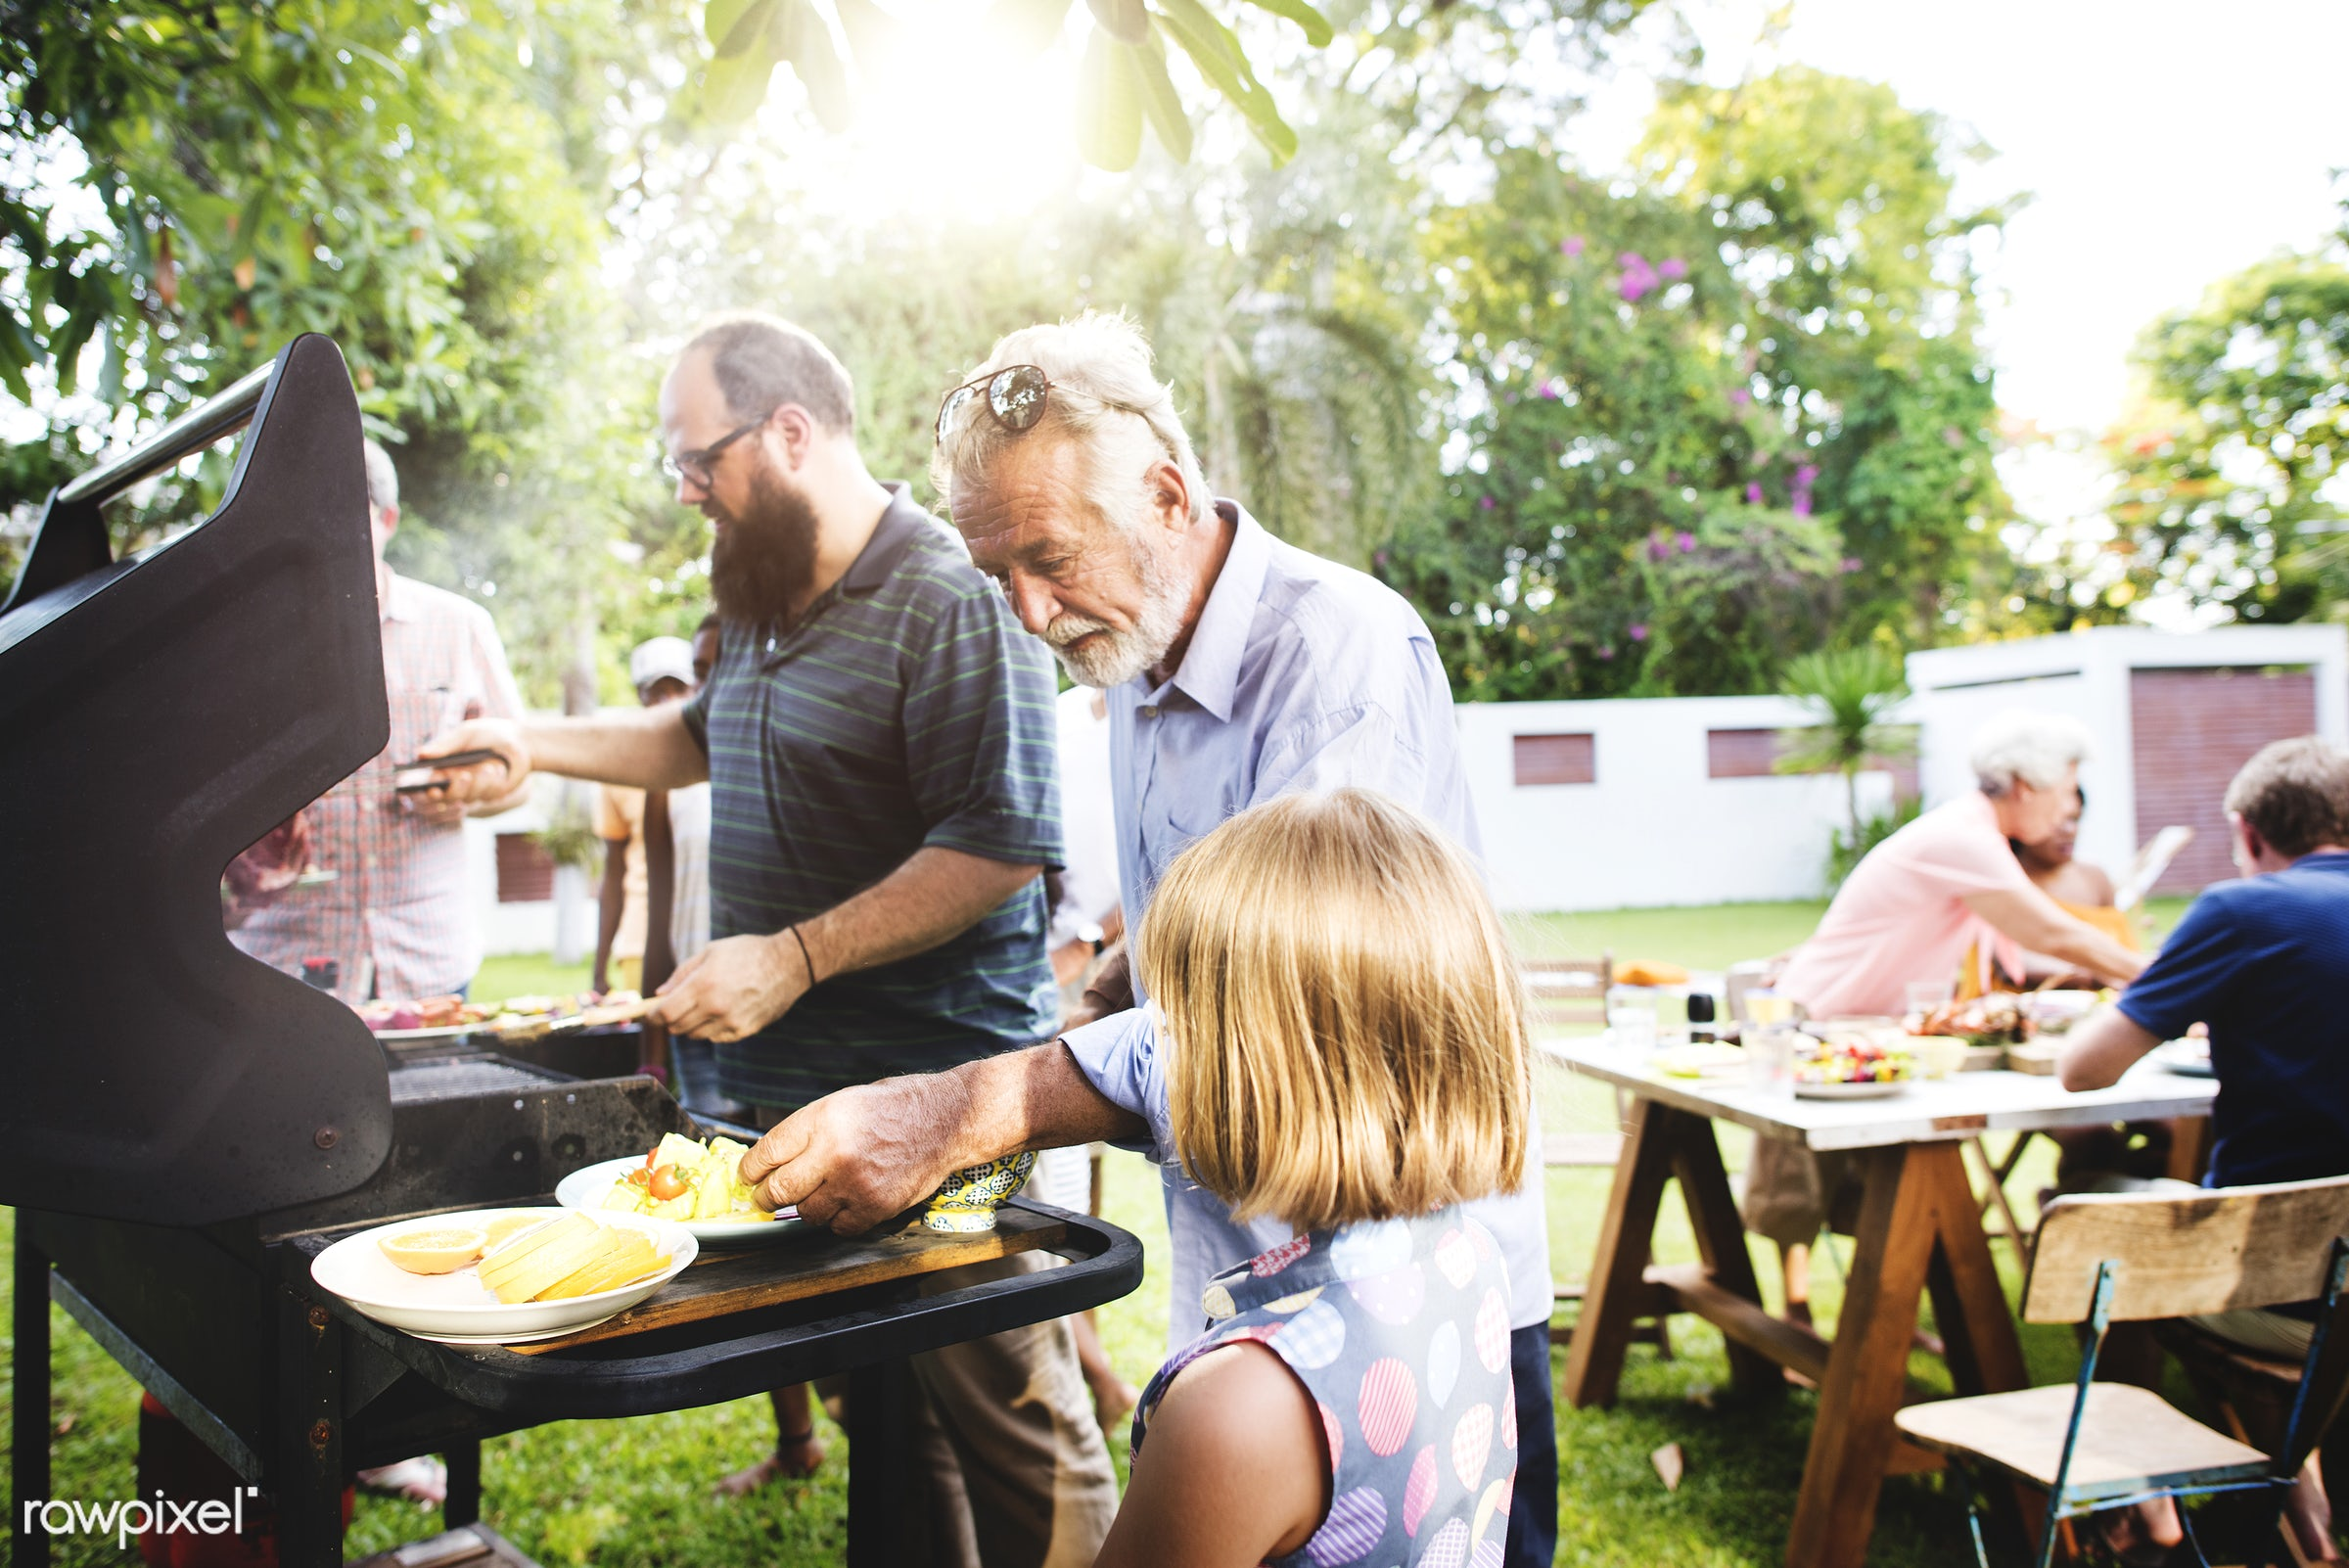 Family having a barbecue party in the yard, spending time together - bbq, grill, barbecue, charcoals, cook, cooking, cookout...